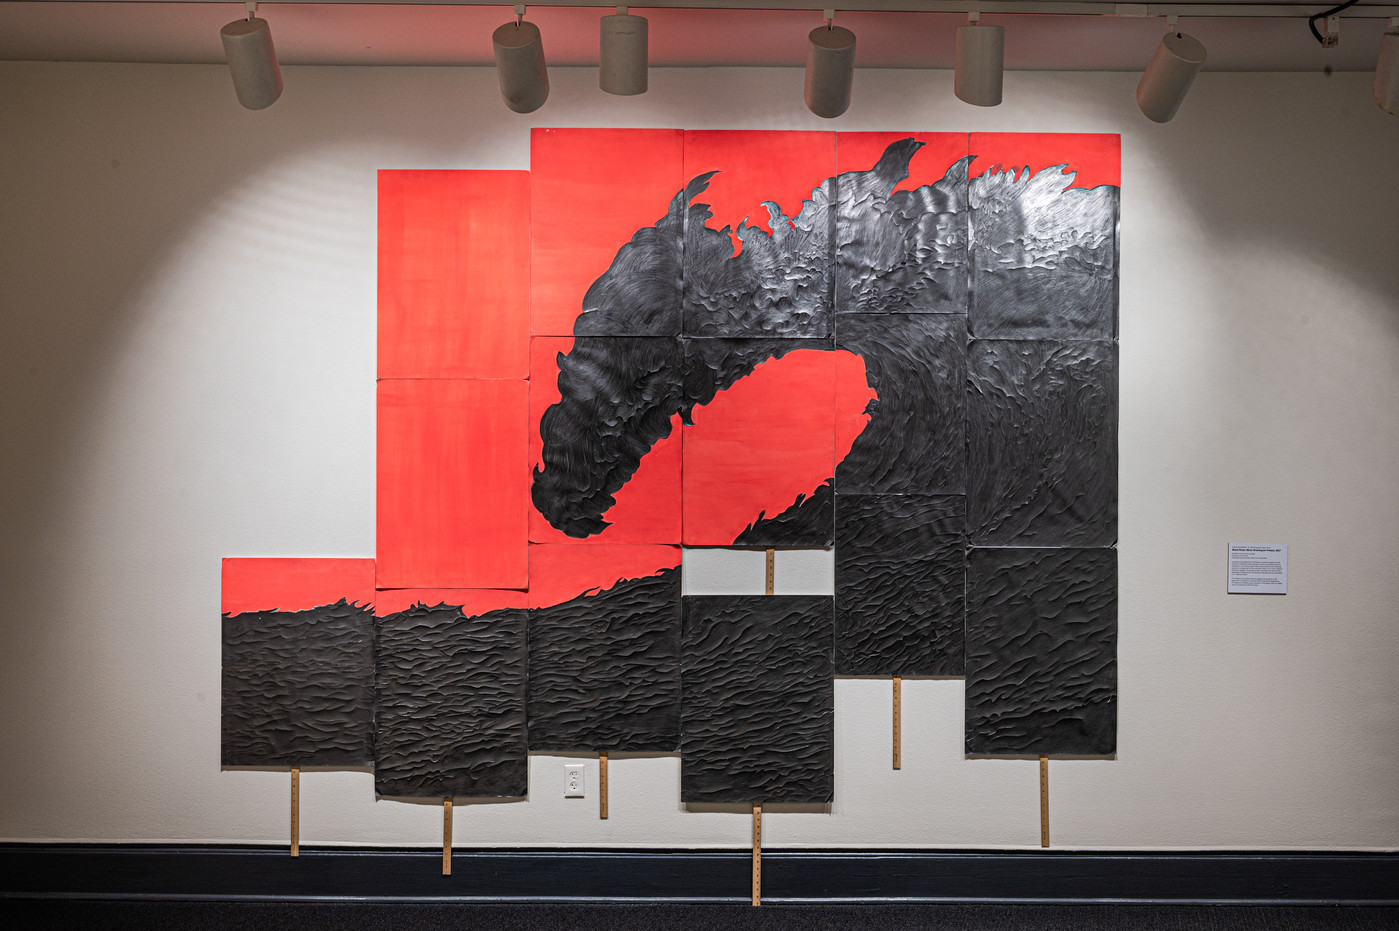 Six rectangular panels of varying heights with a coral background are hung together on a wall with yardsticks attached to the bottoms of each panel. Each panel includes a part of a textured graphite drawing that looks like a giant crashing wave when seen as a whole.